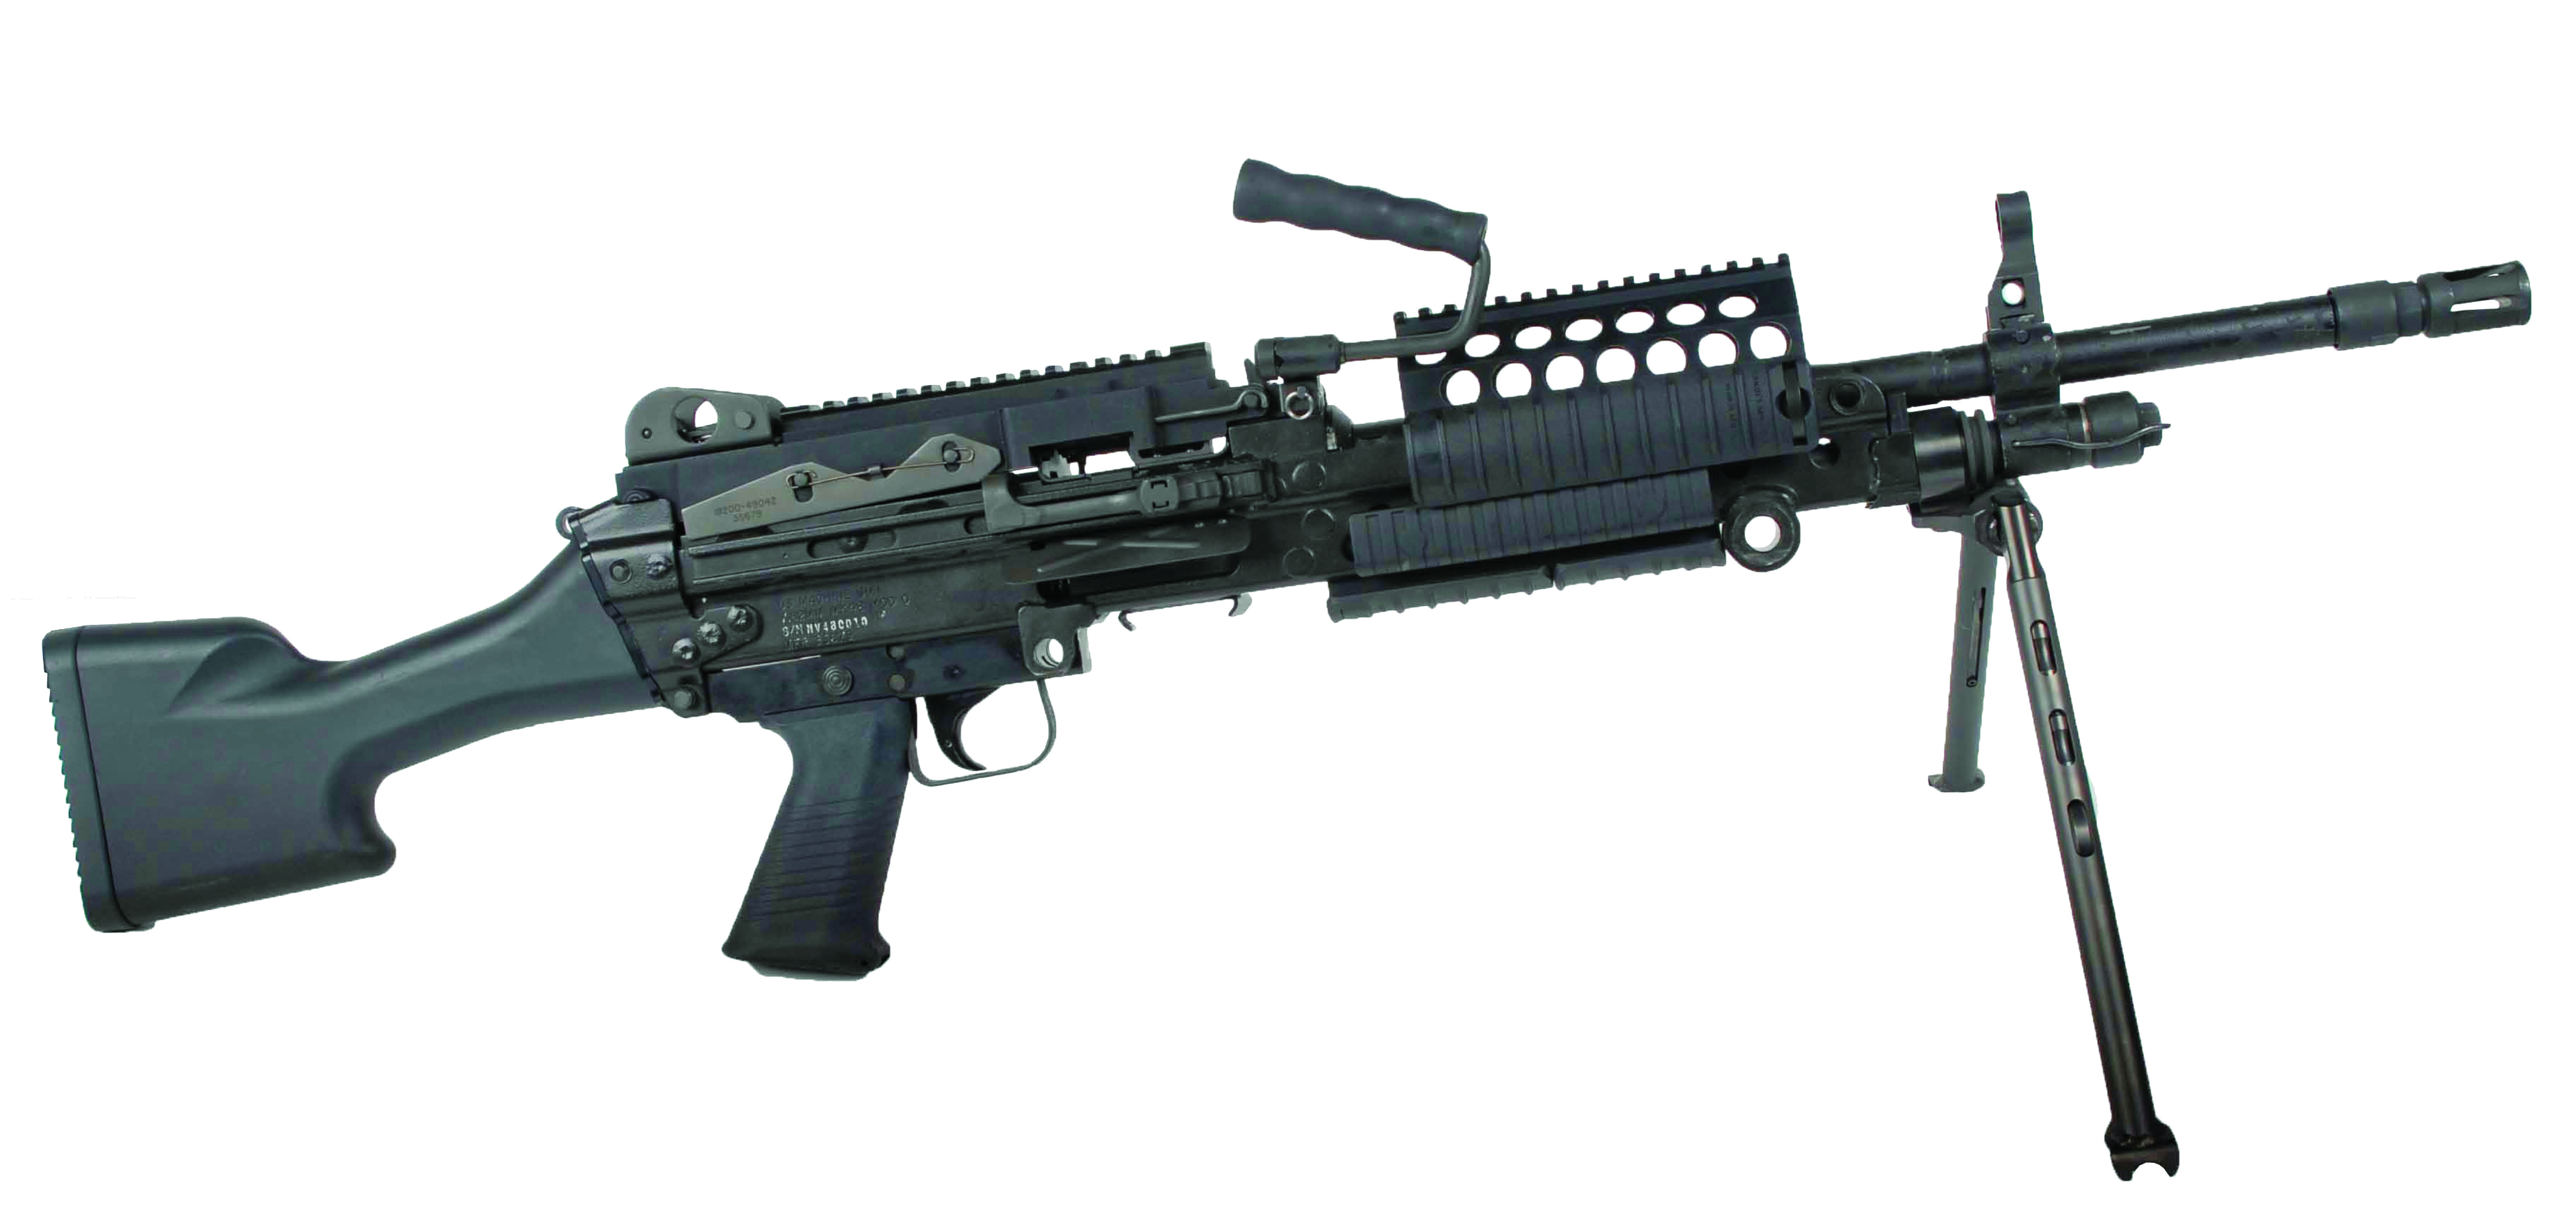 MK48-Mod1 .30Cal(7.62x51mm) Light Machine Gun